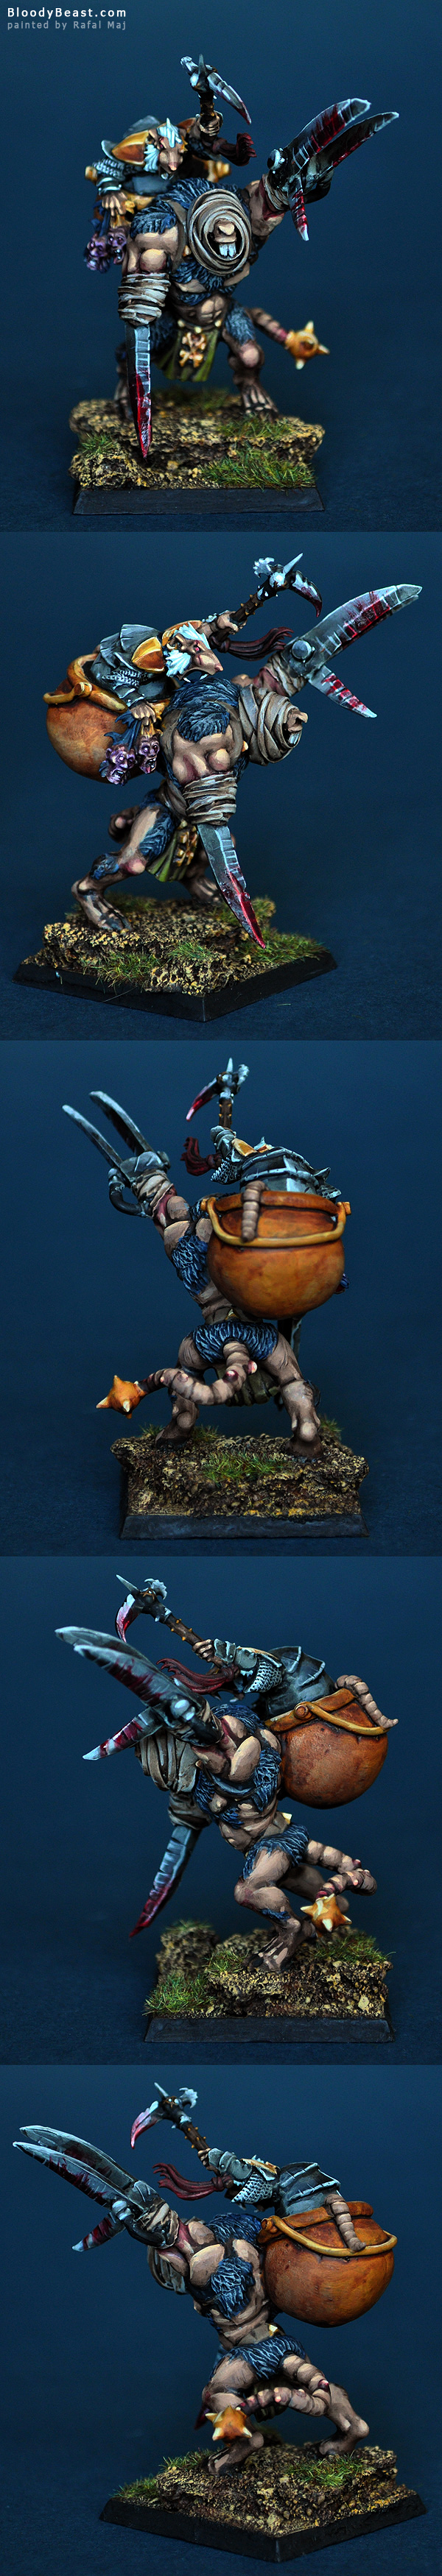 Skaven Lord on Rat Ogre Bonebreaker painted by Rafal Maj (BloodyBeast.com)